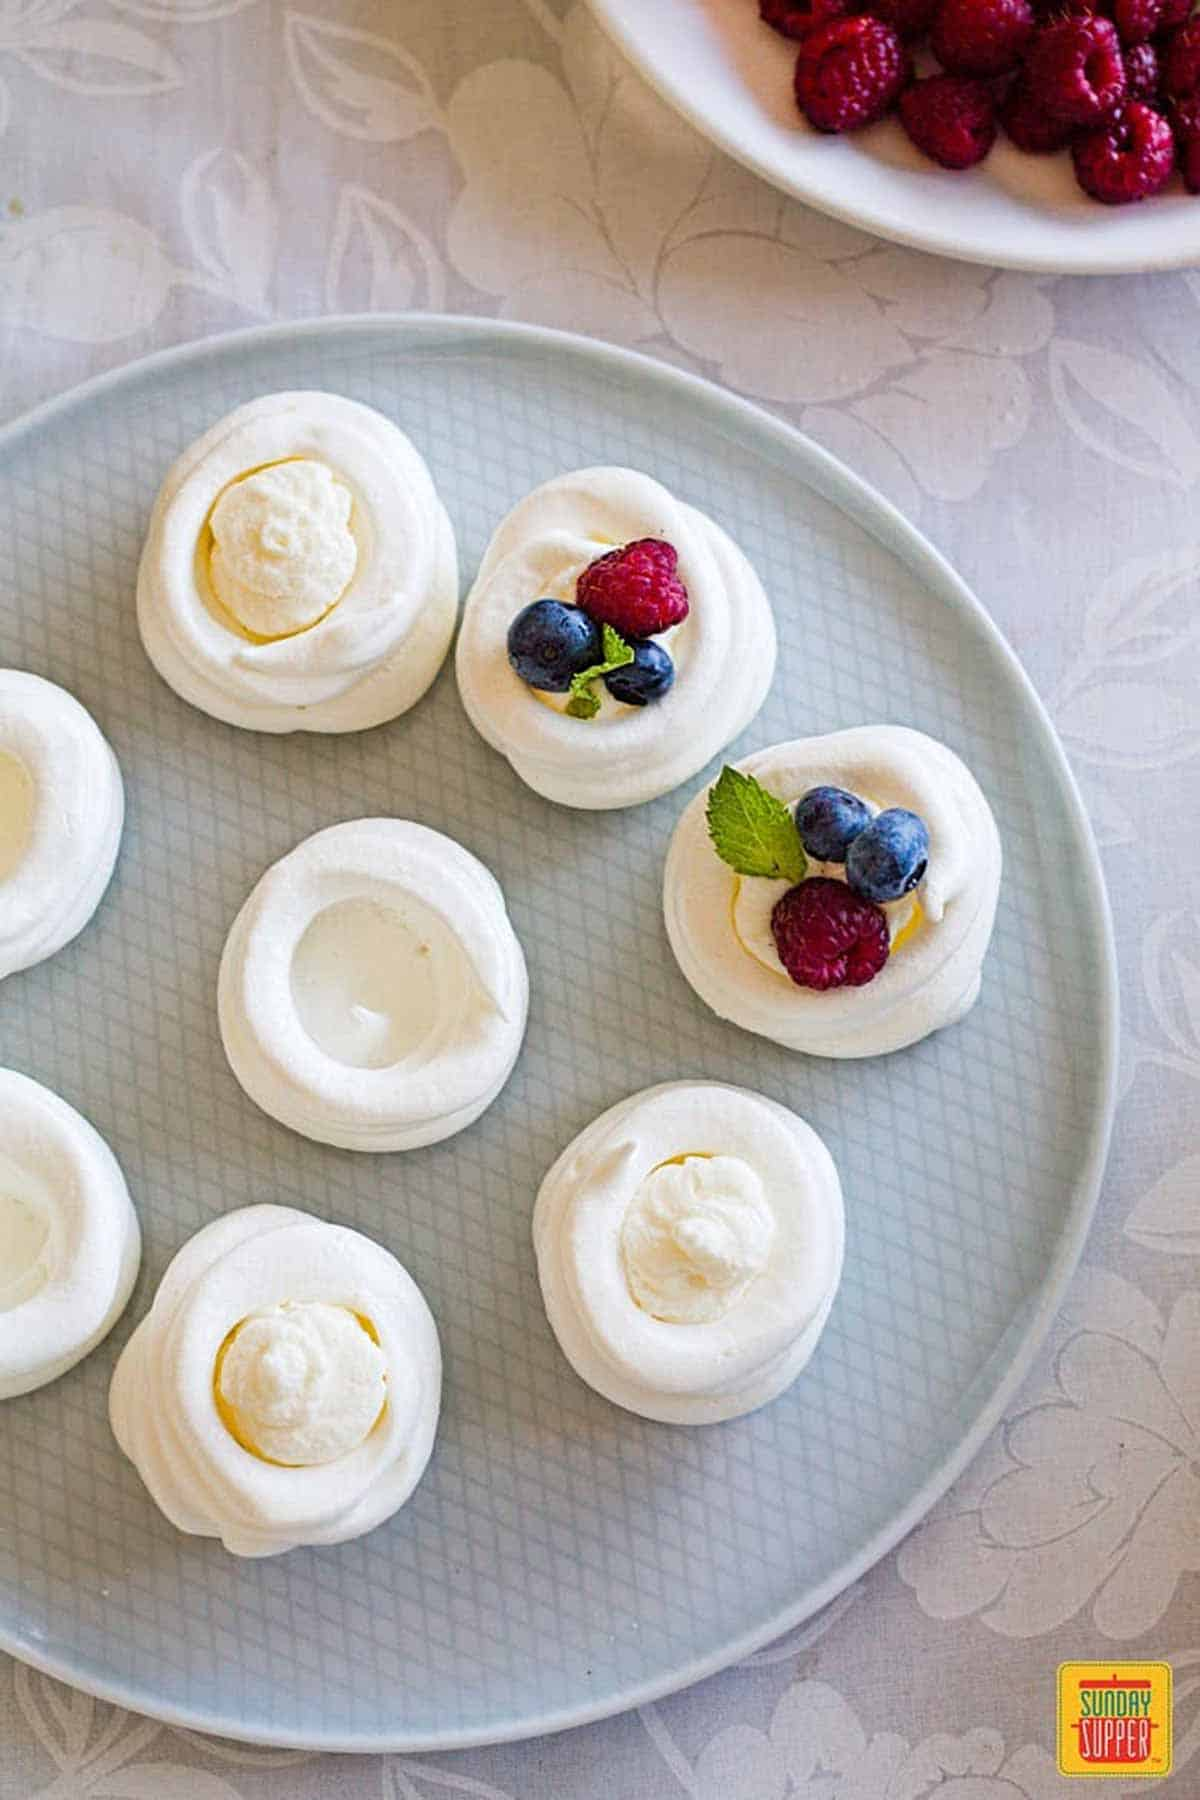 Filling piped into mini pavlovas on a light blue plate